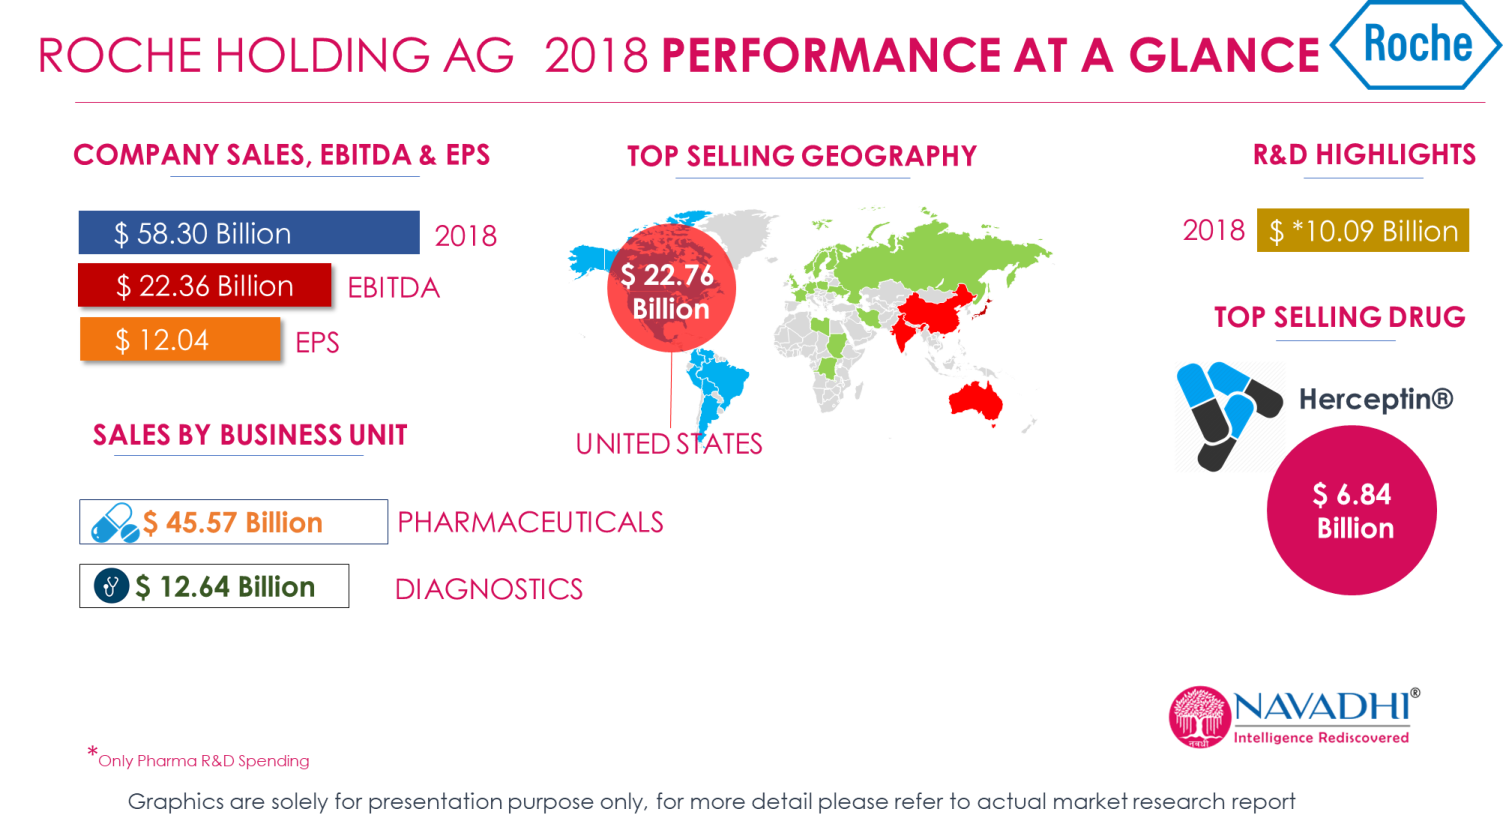 Roche Holding AG 2018 Revenue Performance at a glance